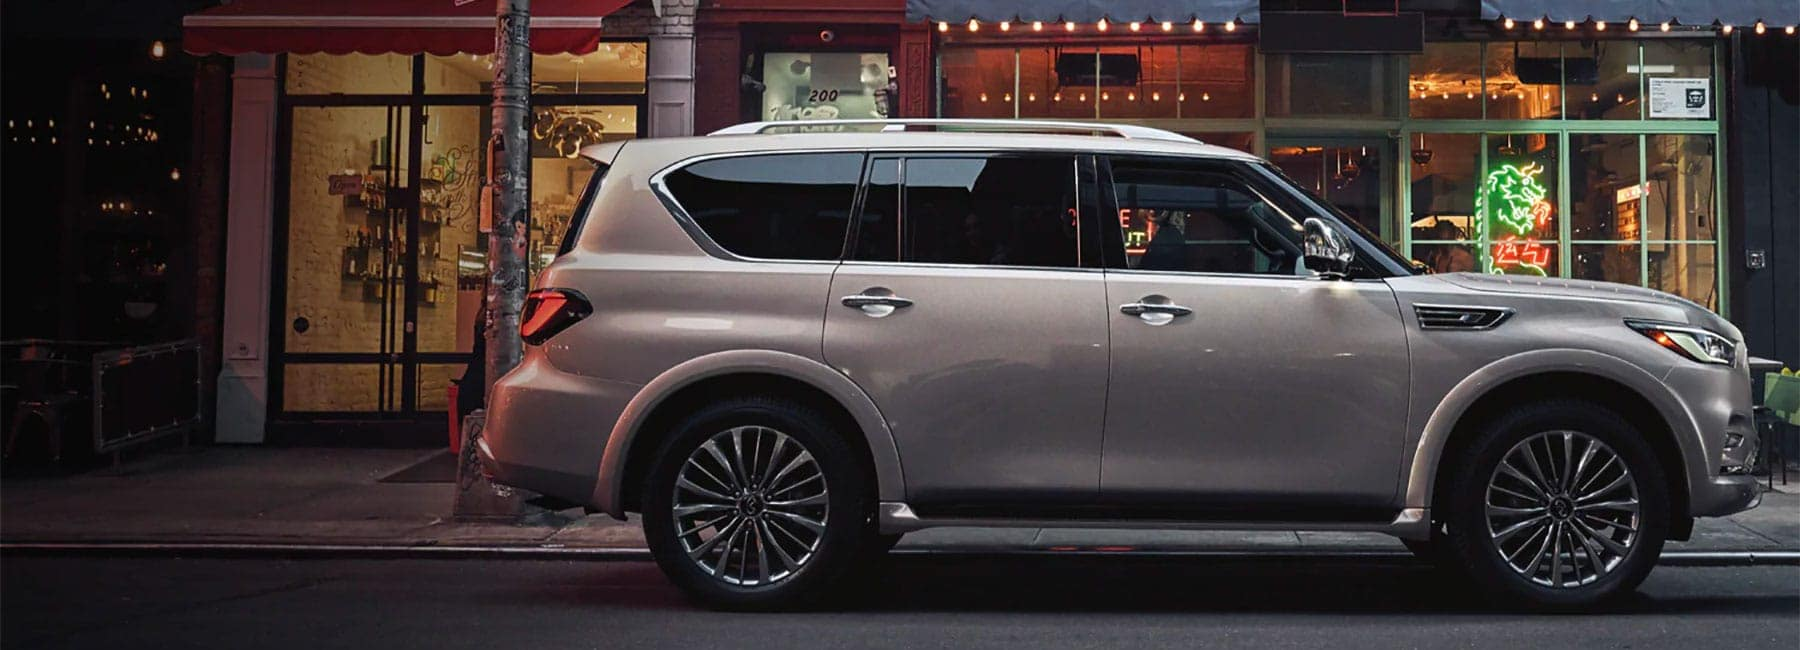 INFINITI QX80 parked on the side of the road